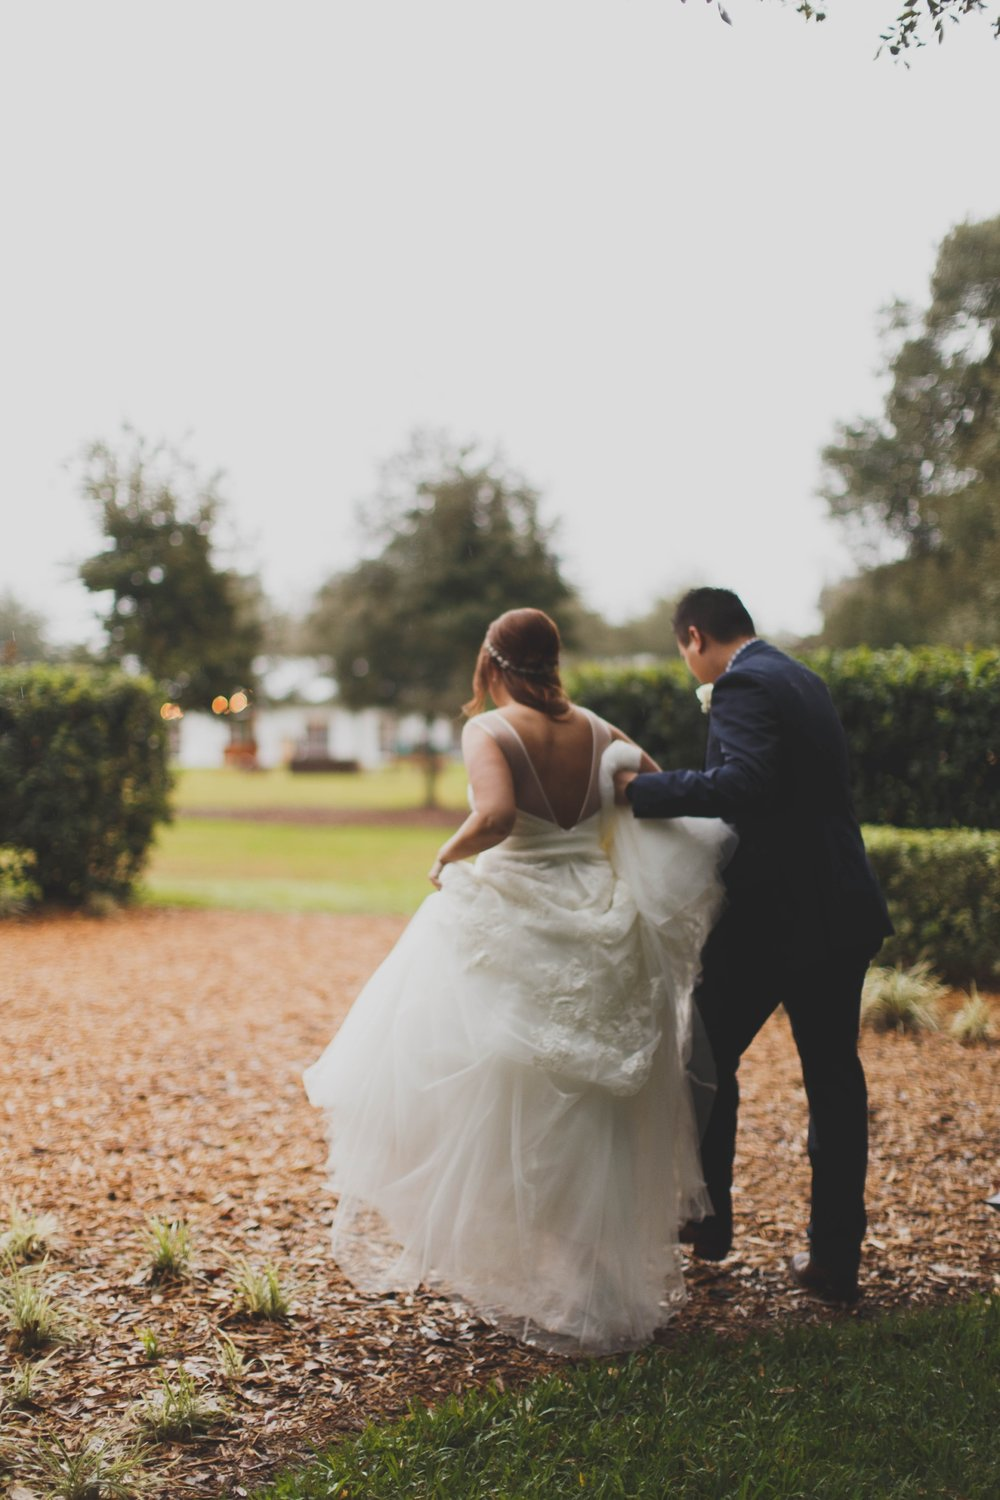 Tampa wedding photograper outdoor vintage boho wedding Stacy Paul Photographer_0054.jpg